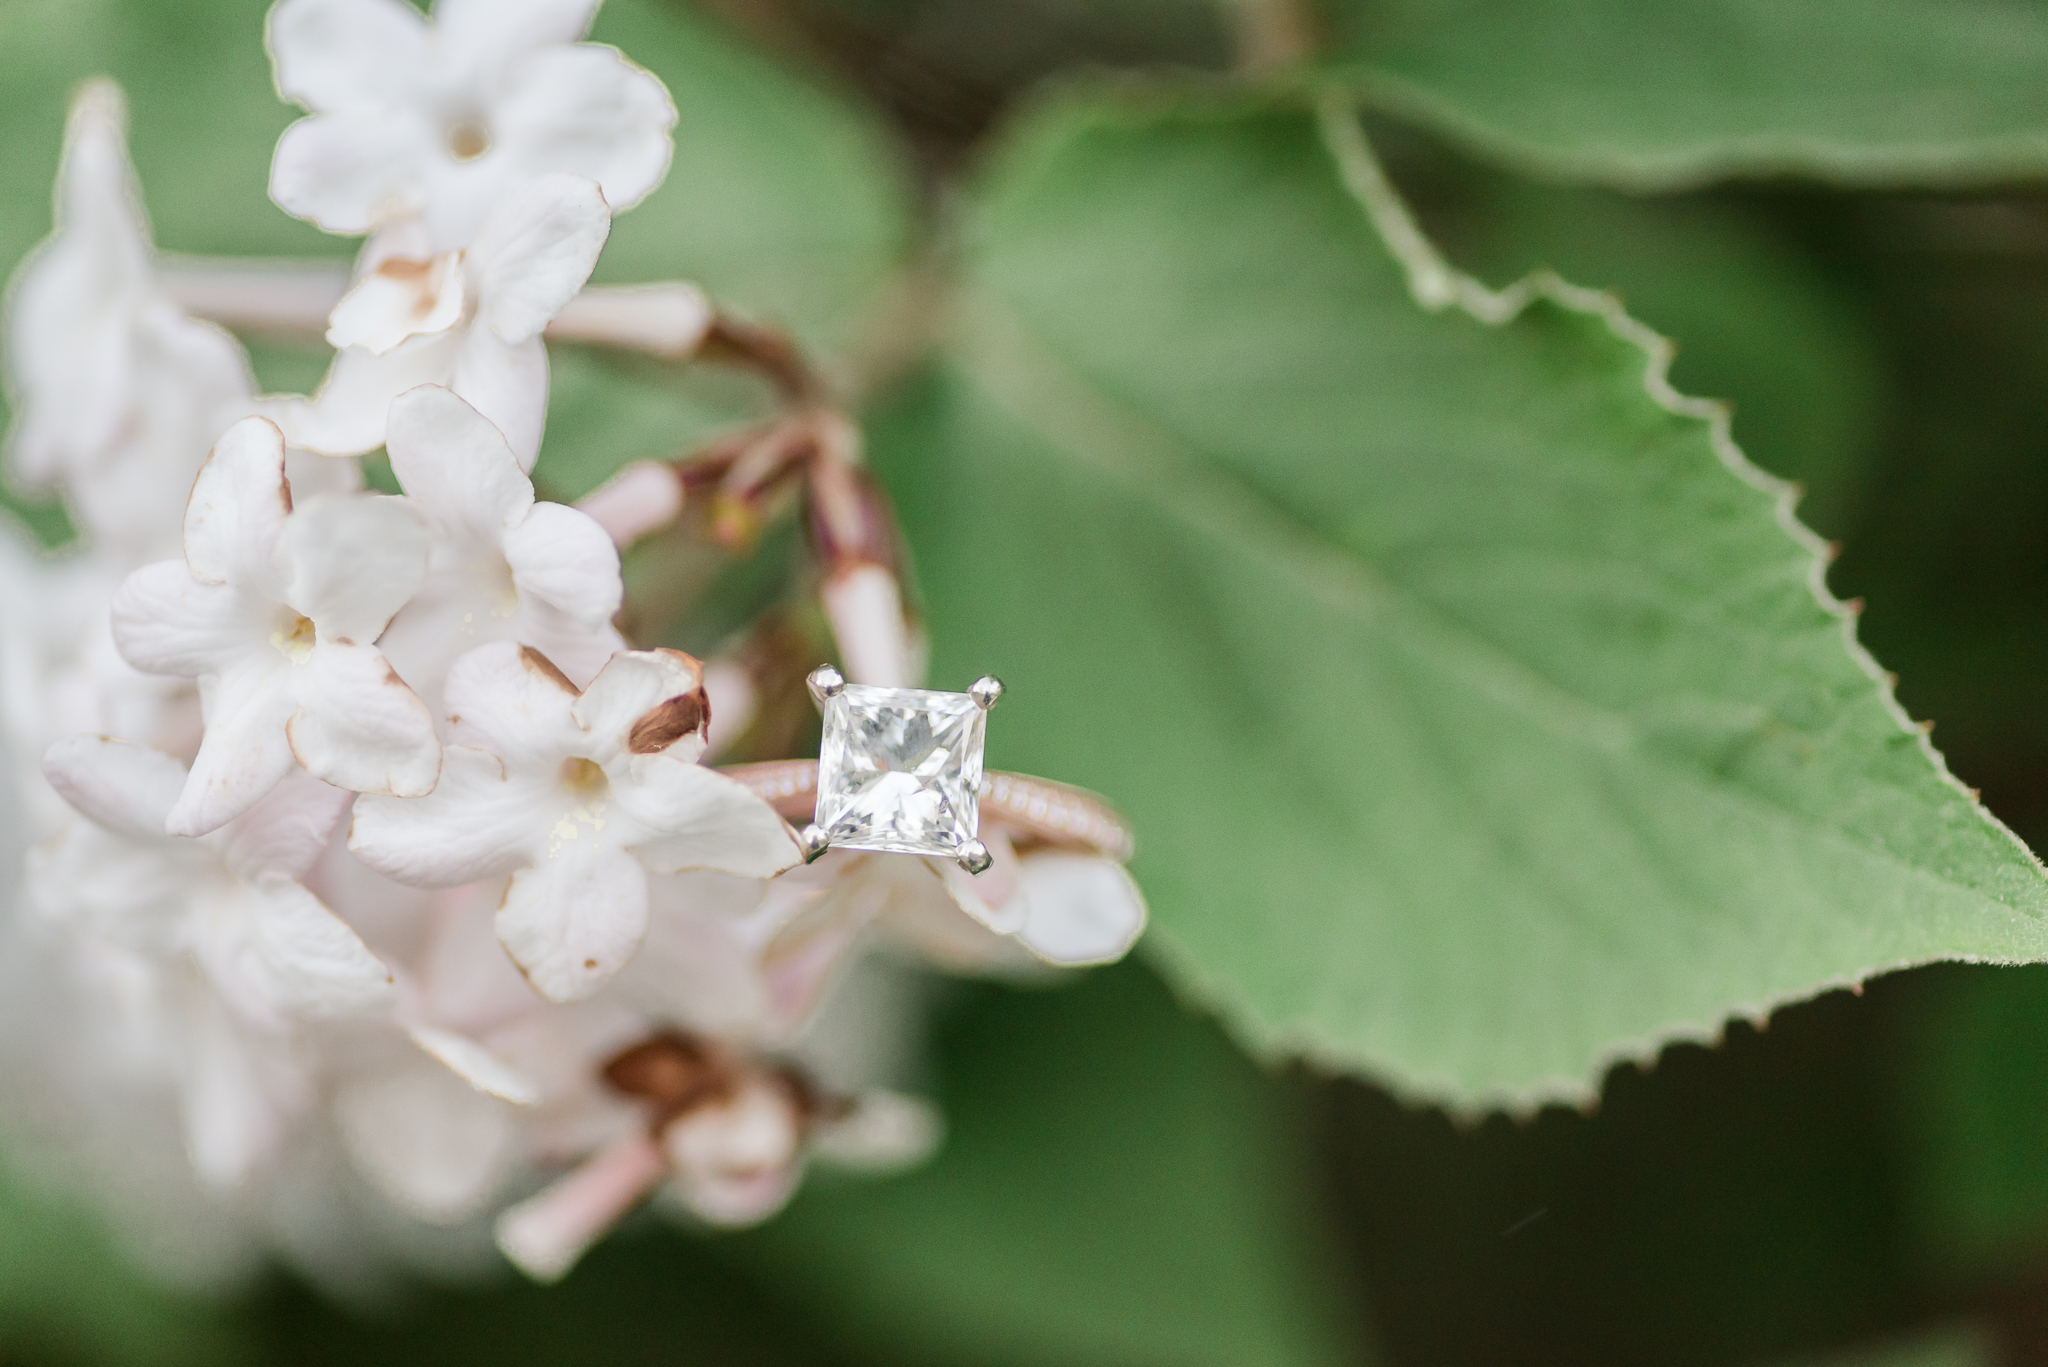 Richie Woods Nature Preserve and Mustard Seed Gardens Engagement Session Wedding Photos-59.jpg